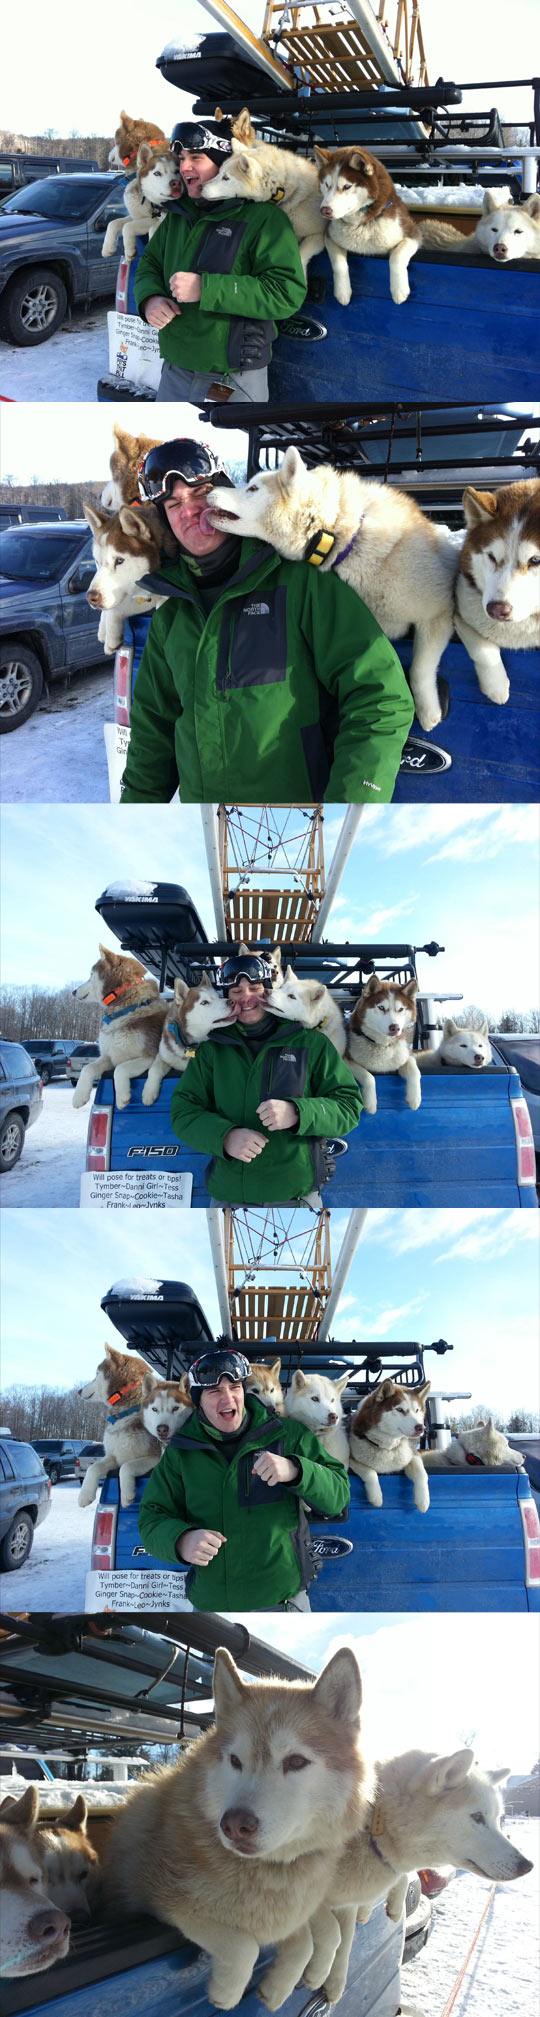 Some affectionate sled dogs